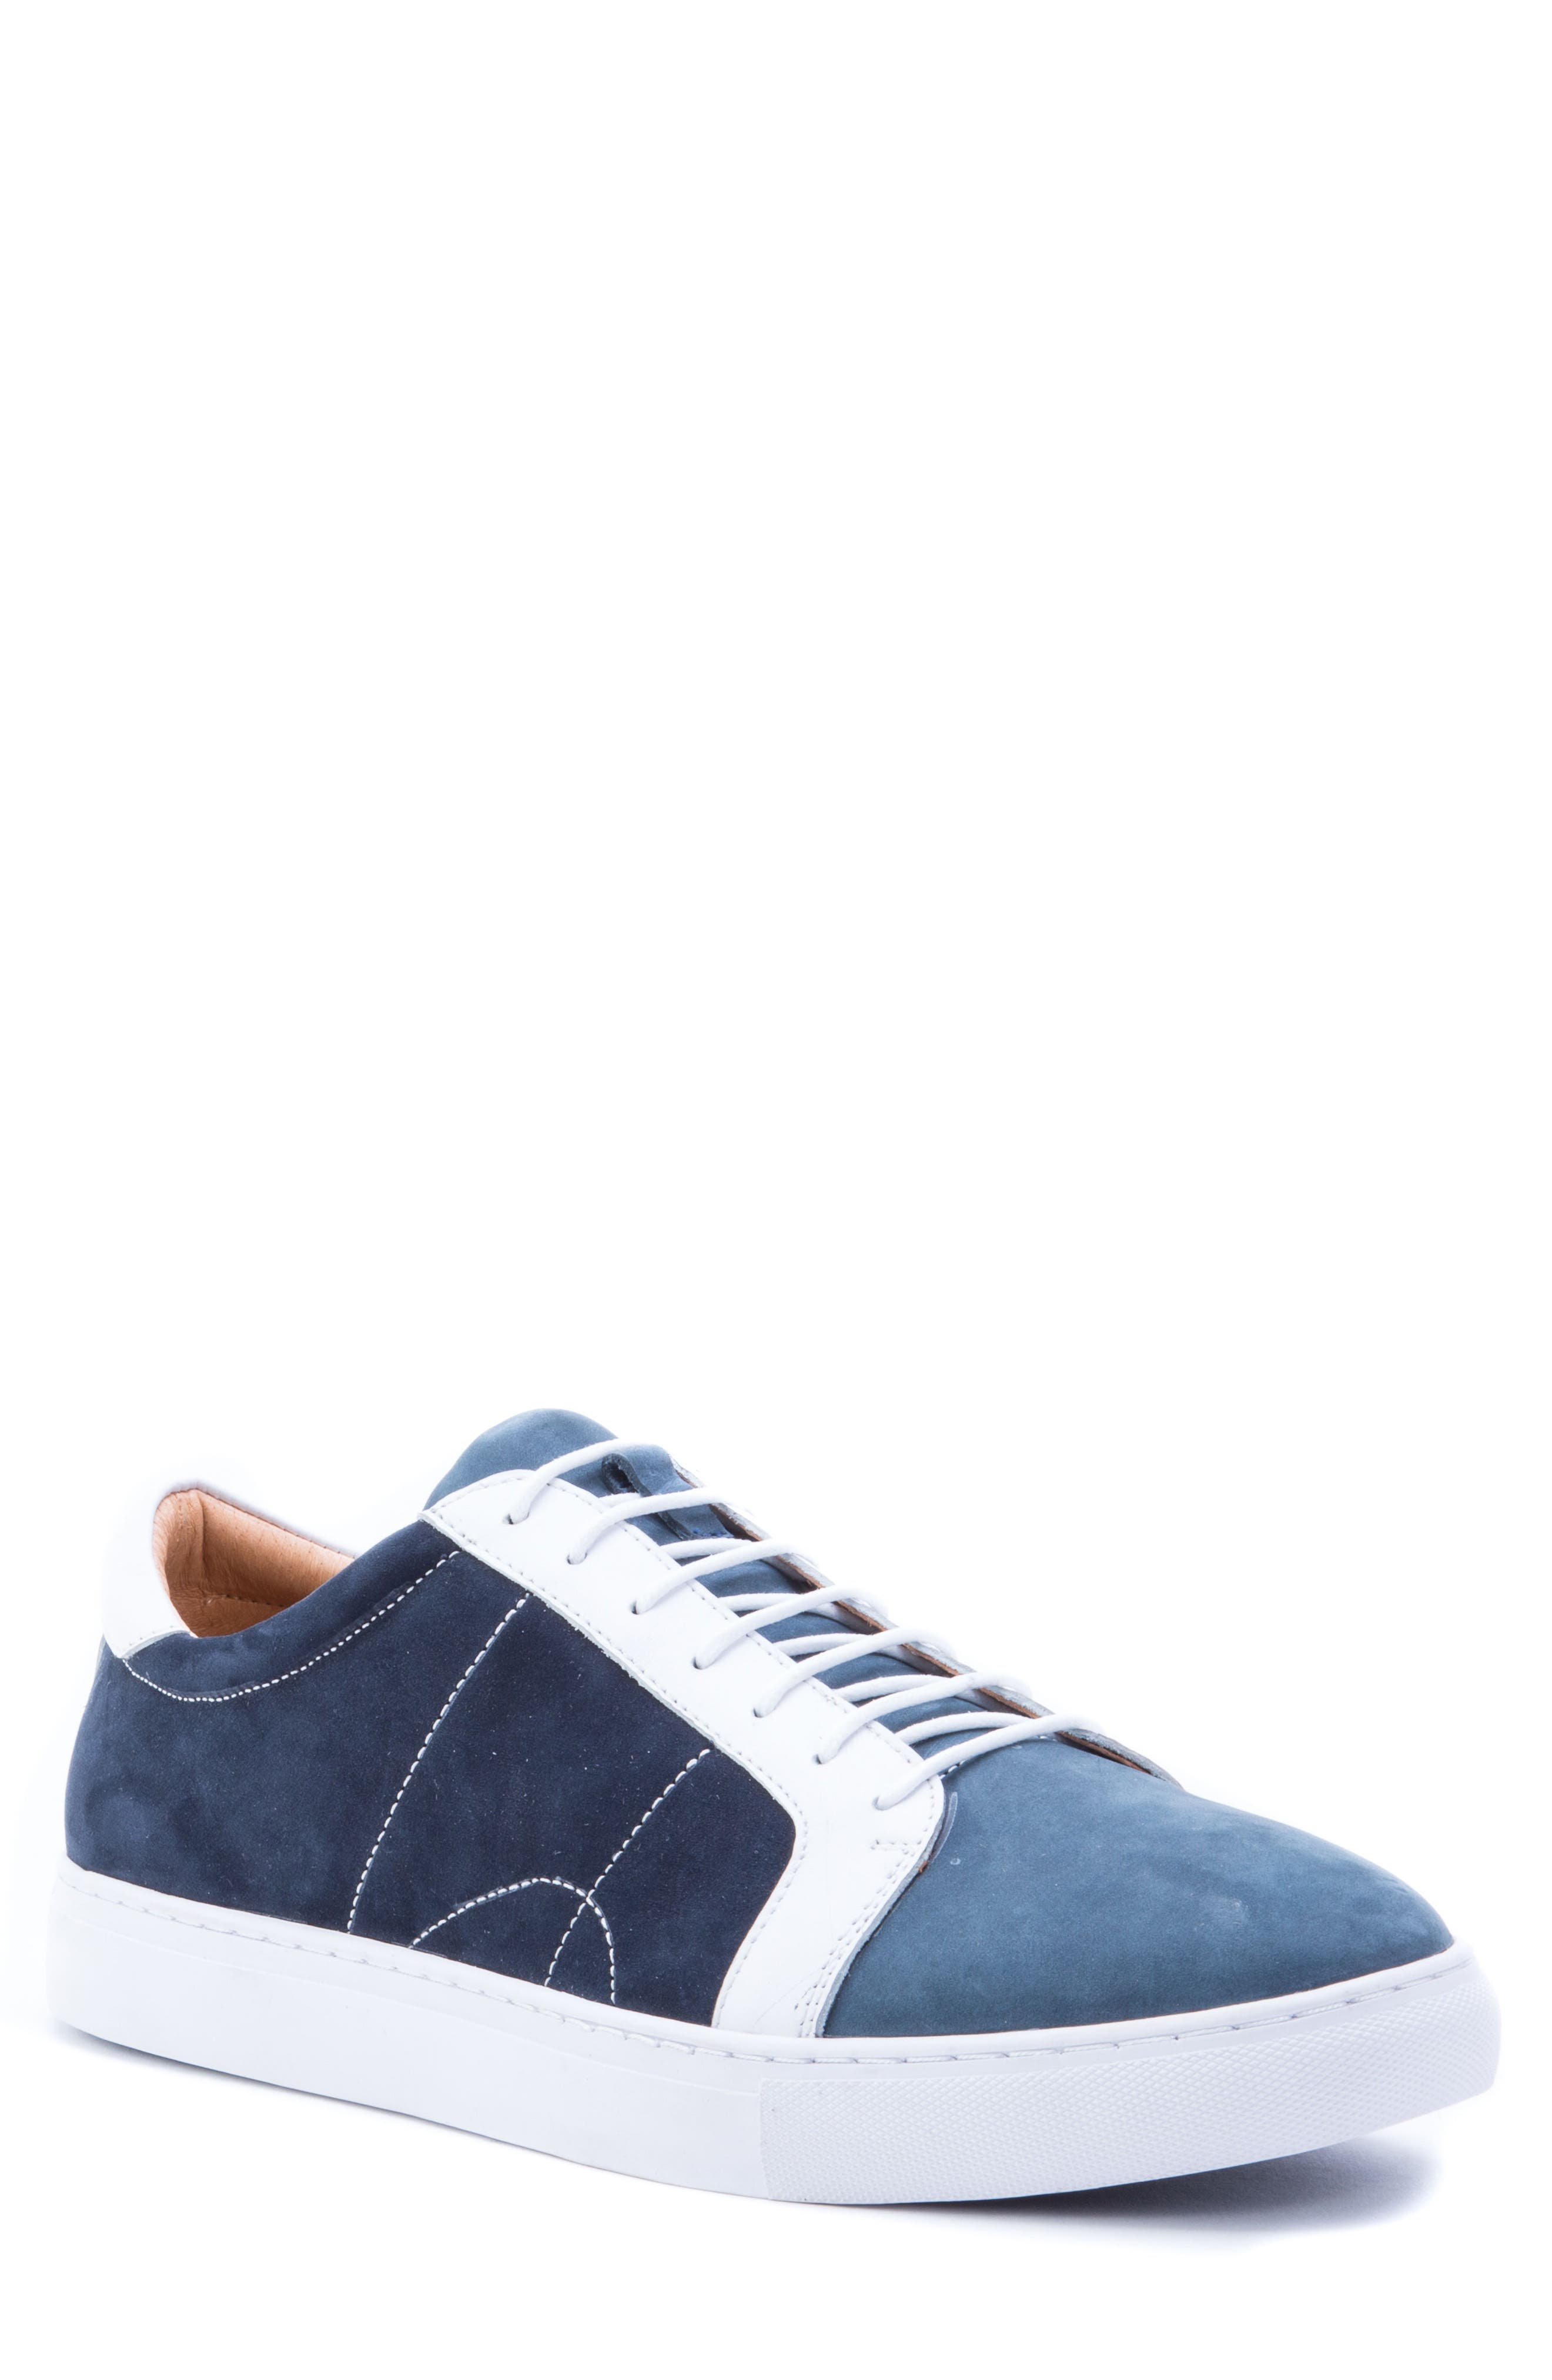 Gonzalo Low Top Sneaker,                             Main thumbnail 1, color,                             Navy Suede